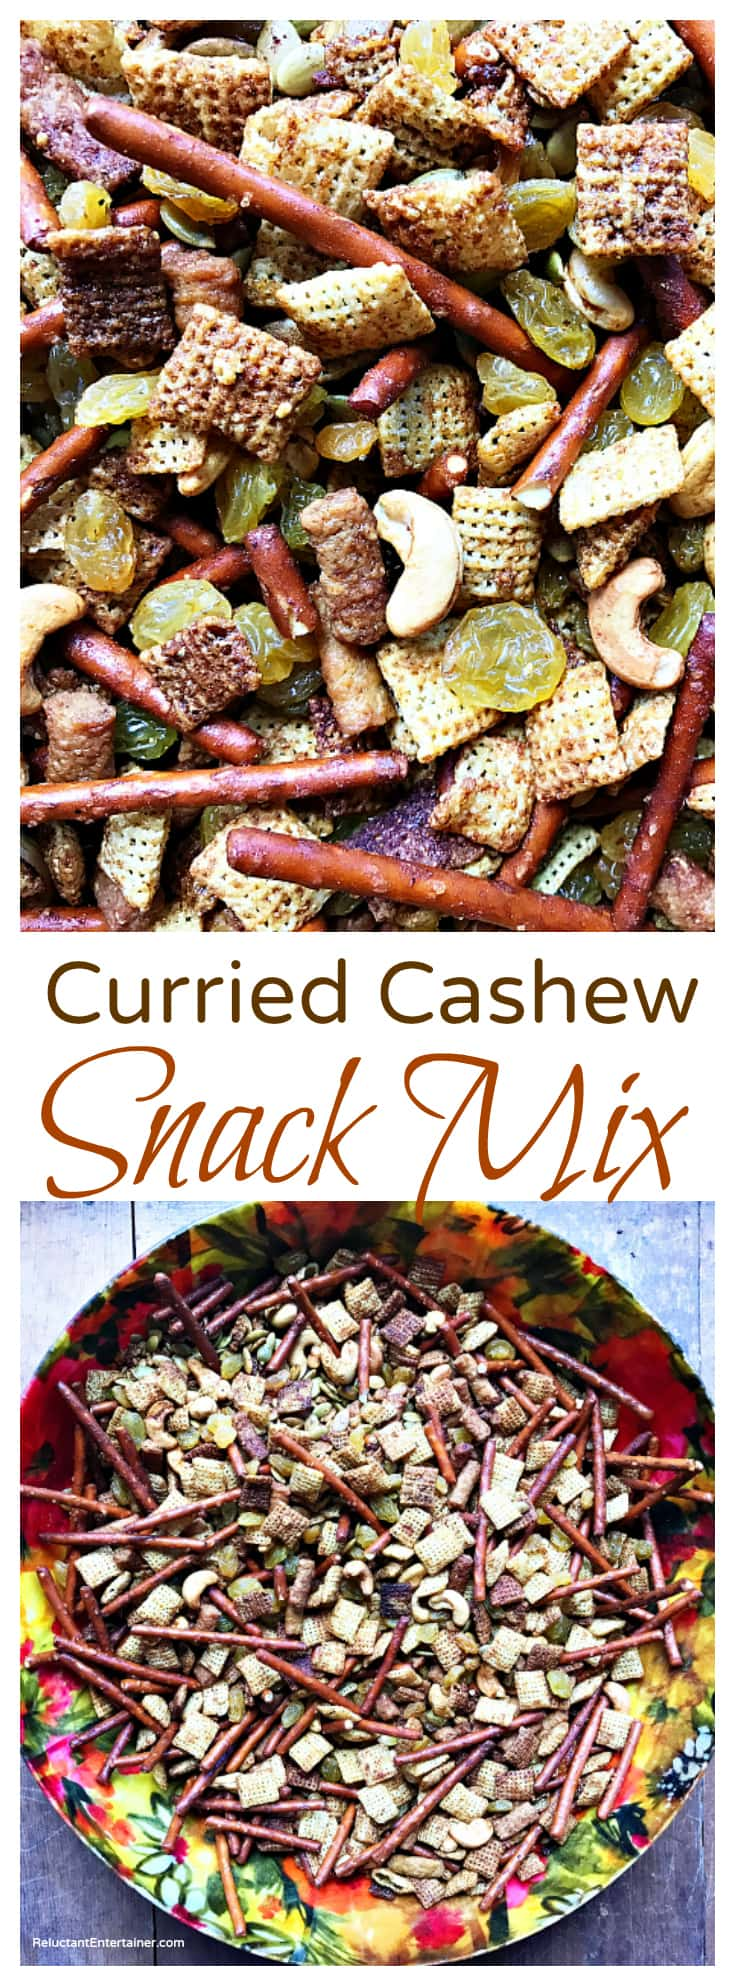 Curried Cashew Snack Mix